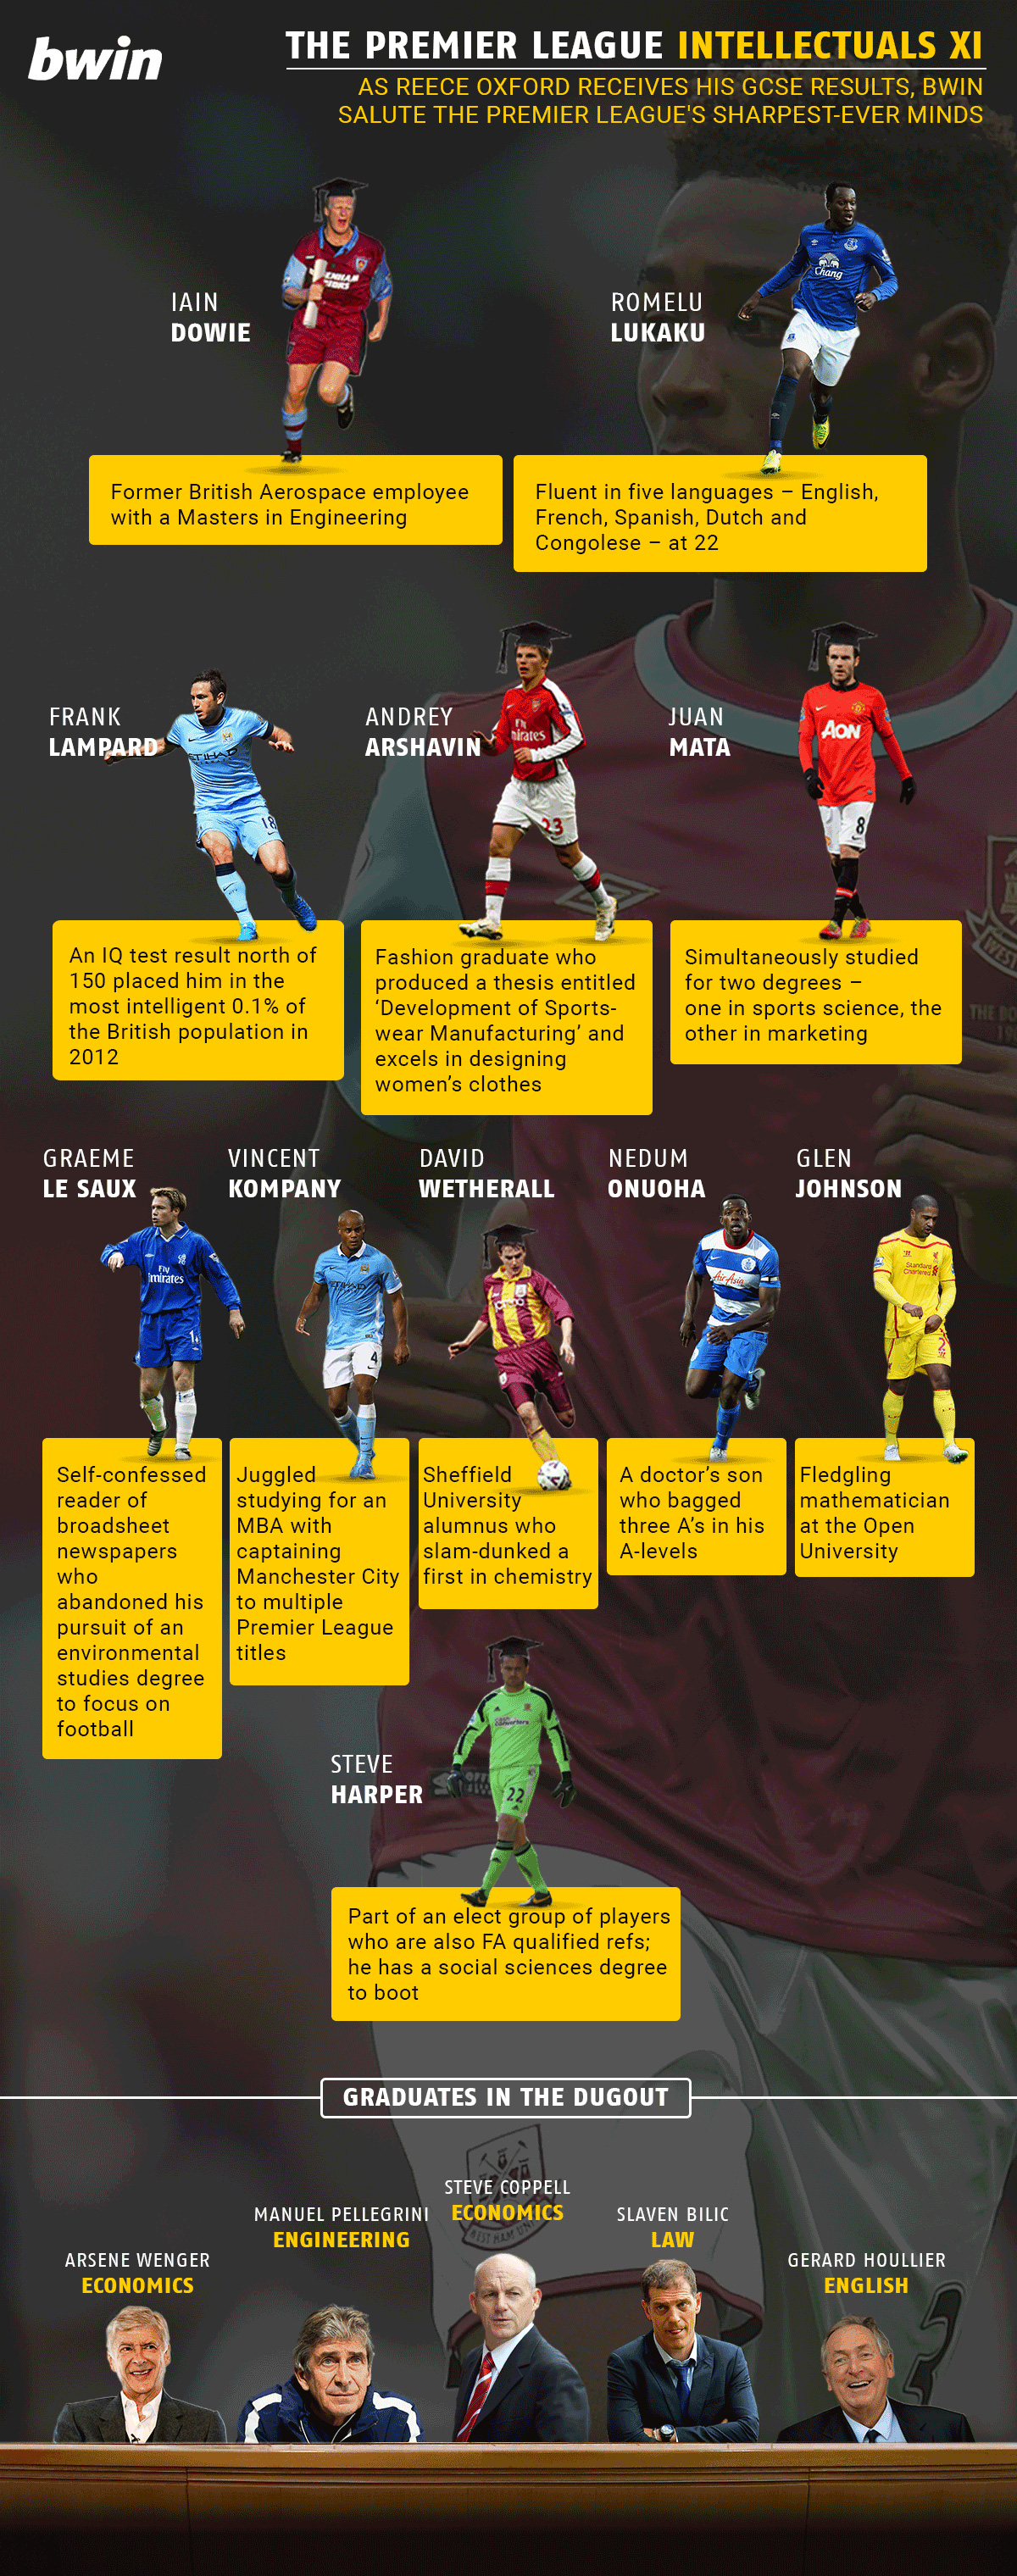 The Premier League Intellectuals XI